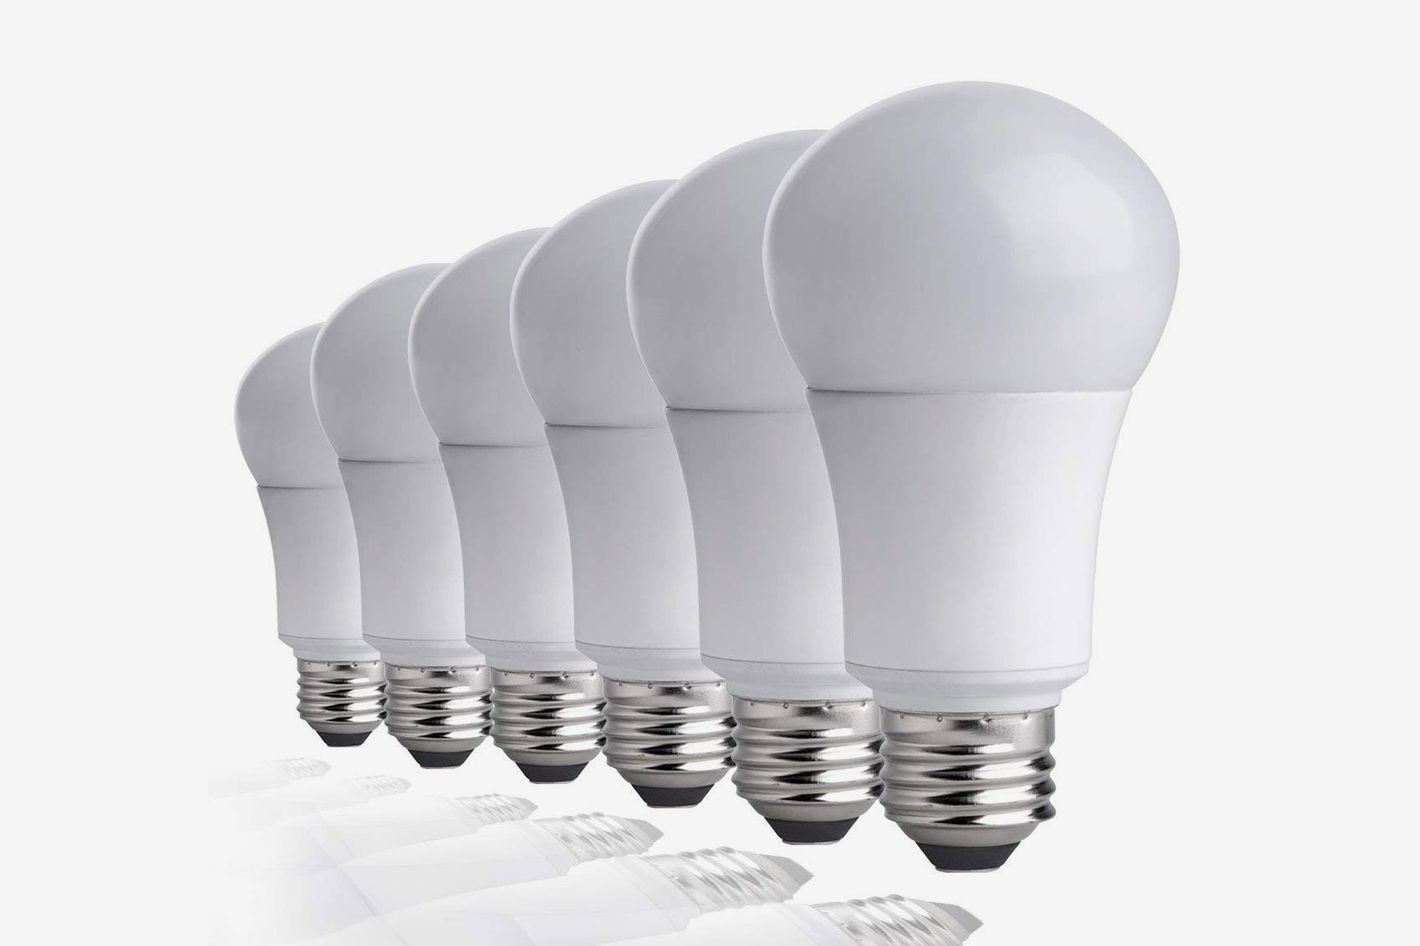 TCP 60W Equivalent LED Light Bulbs Soft White 2700K (6 Pack)